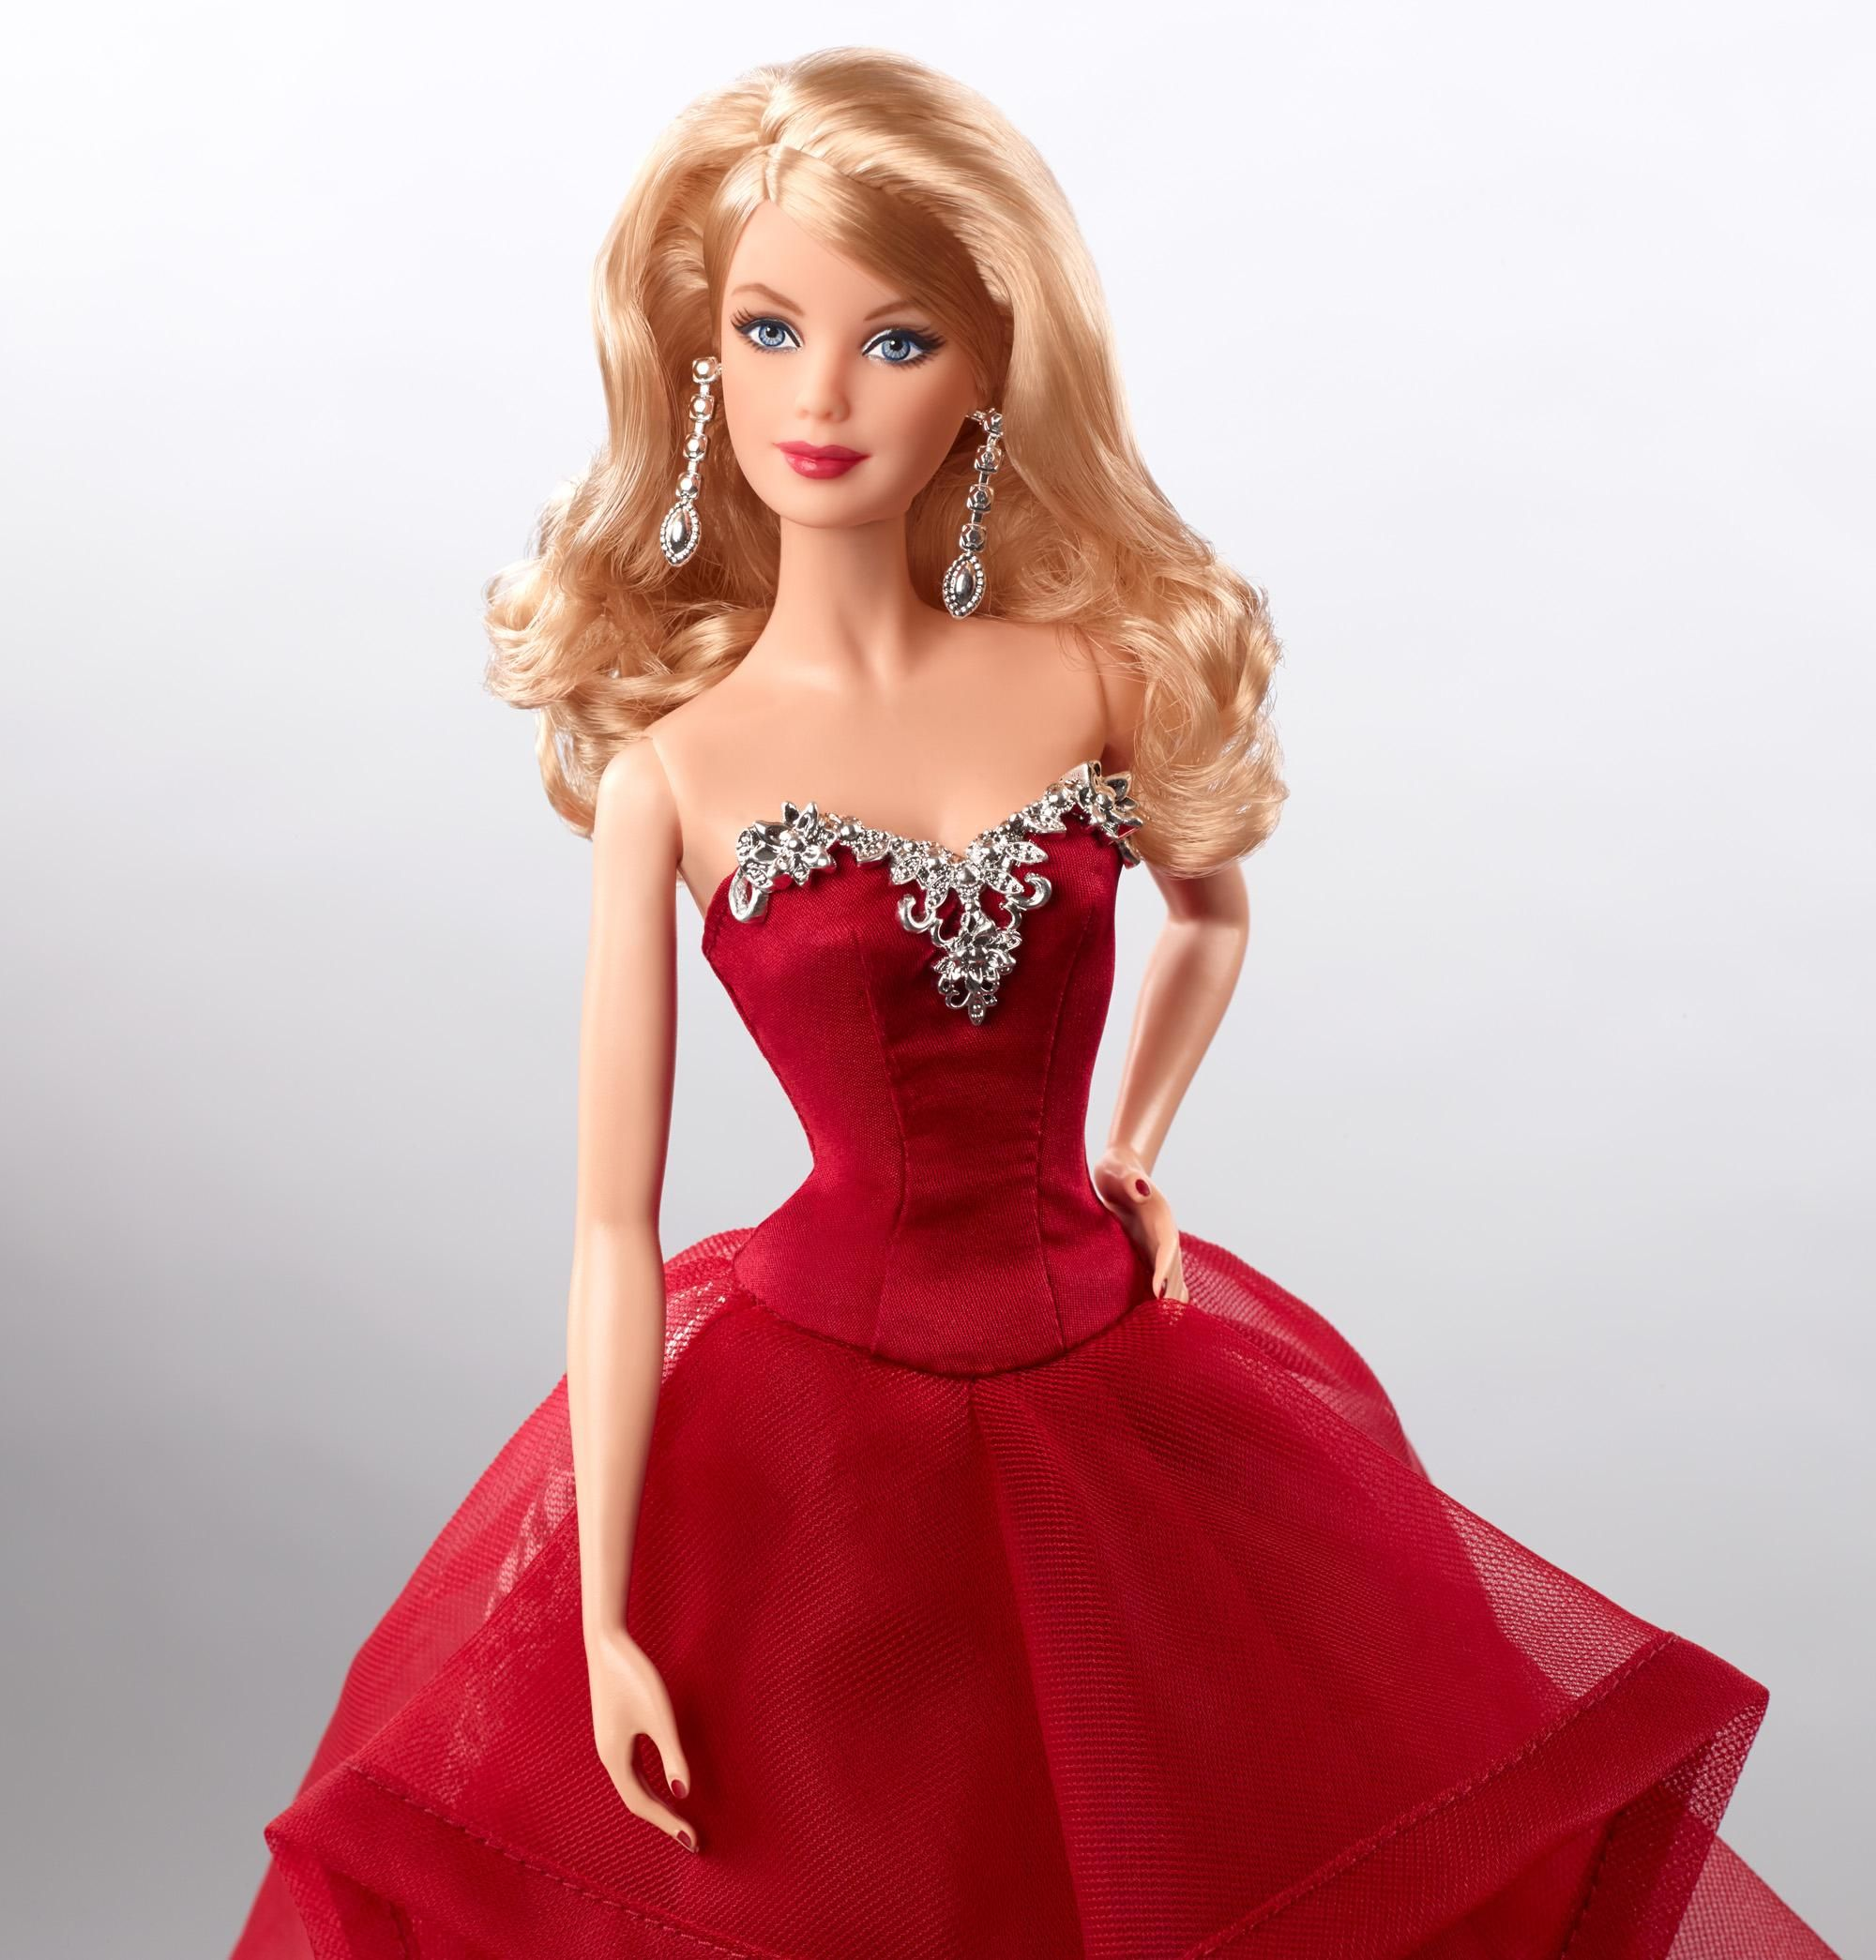 Barbie Doll Fashionistas Clothing Fashion Complete Look Red Sheer Chic Gown